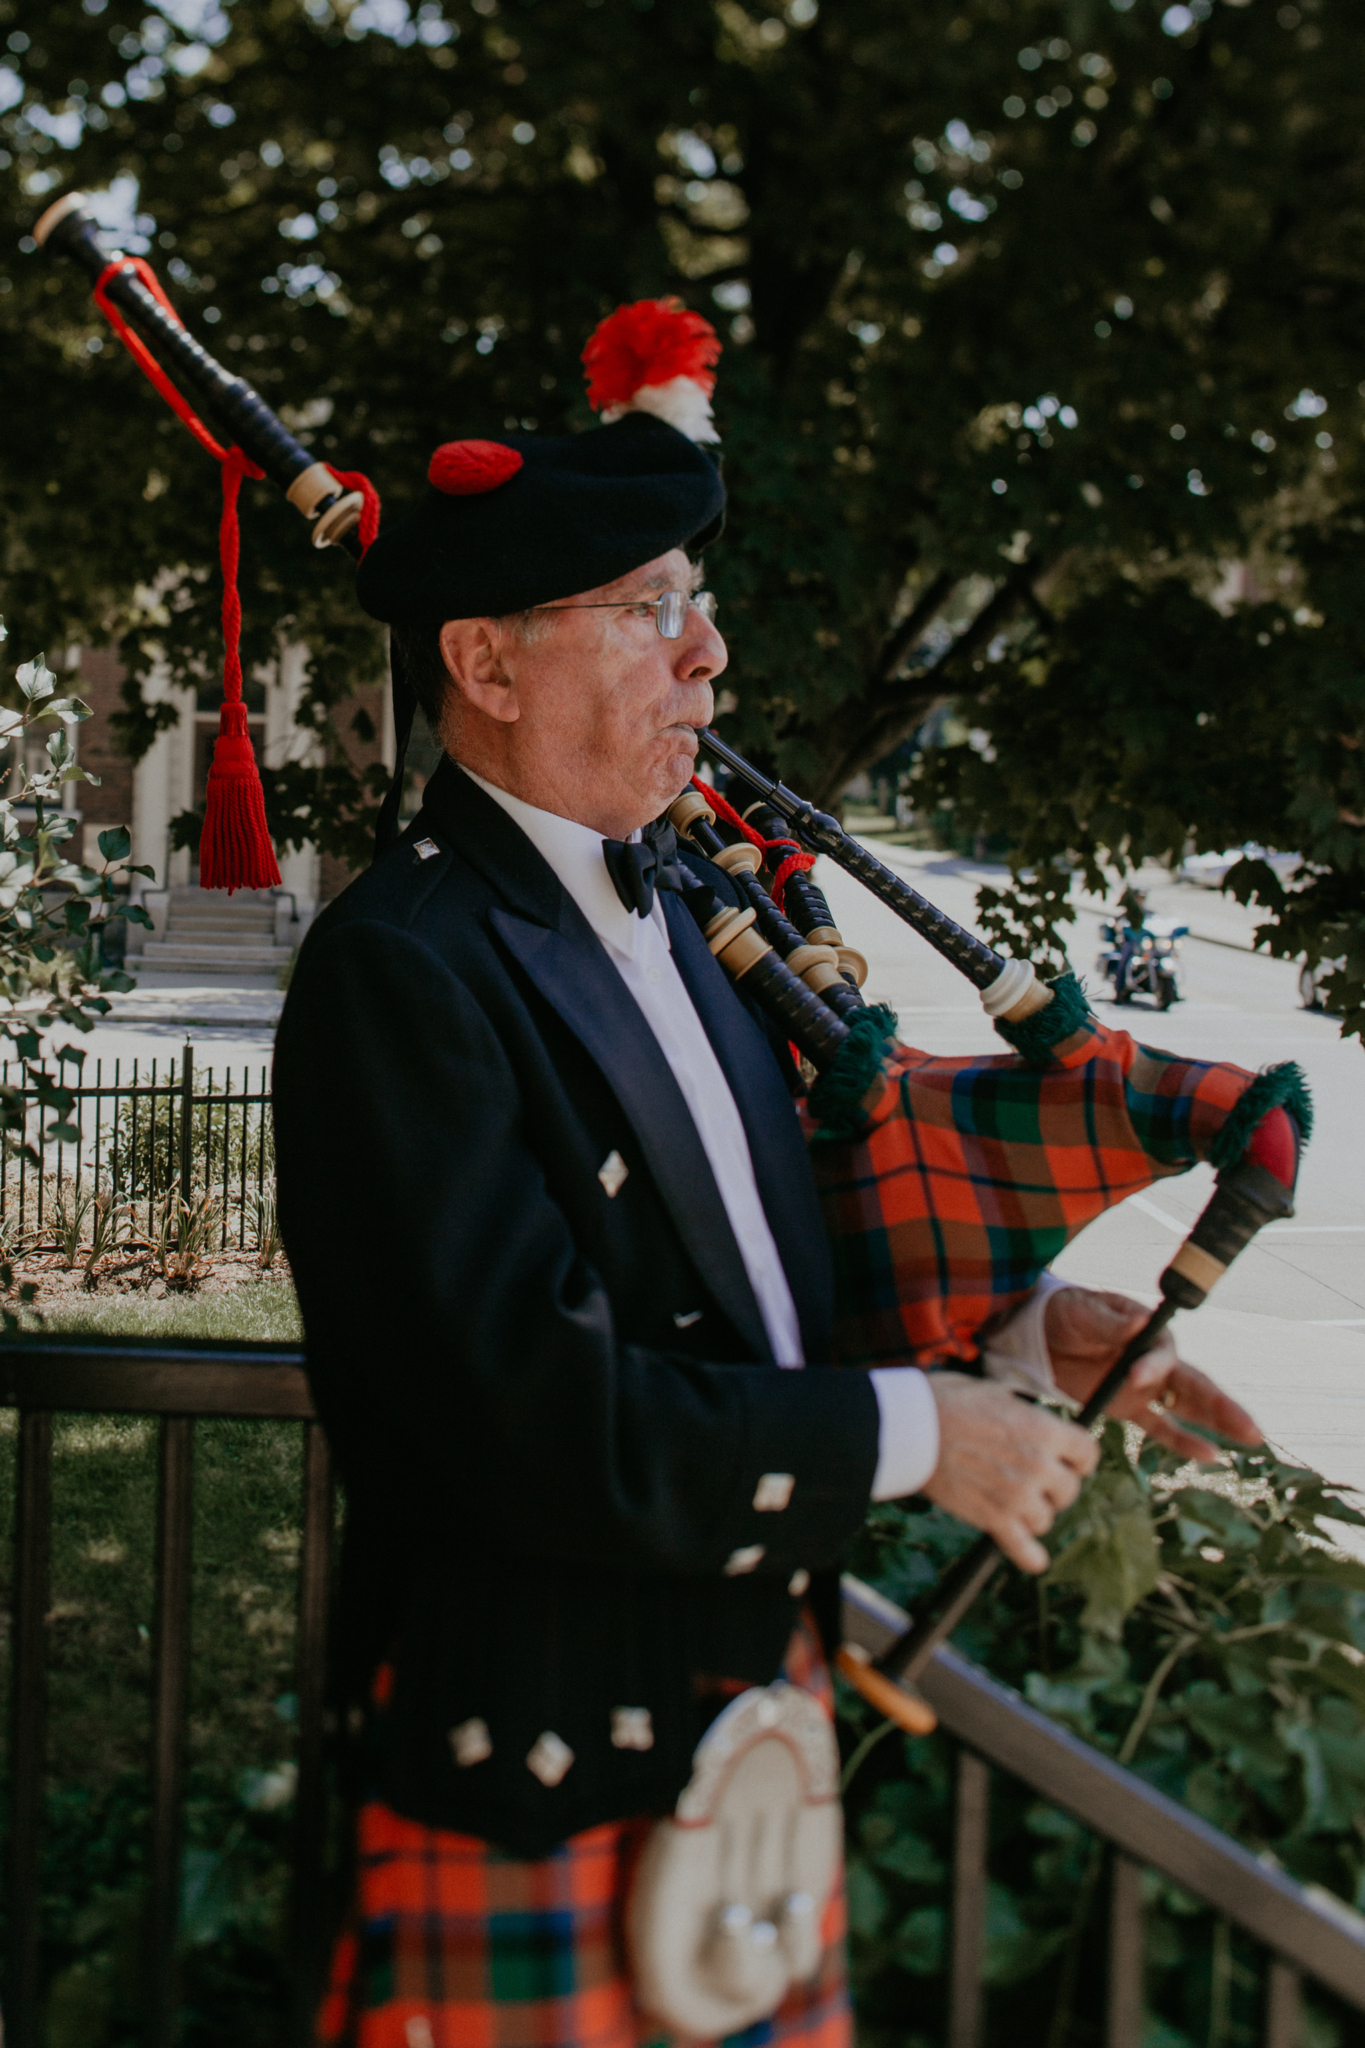 Scottish bagpiper playing bagpipes at wedding ceremony Minneapolis MN